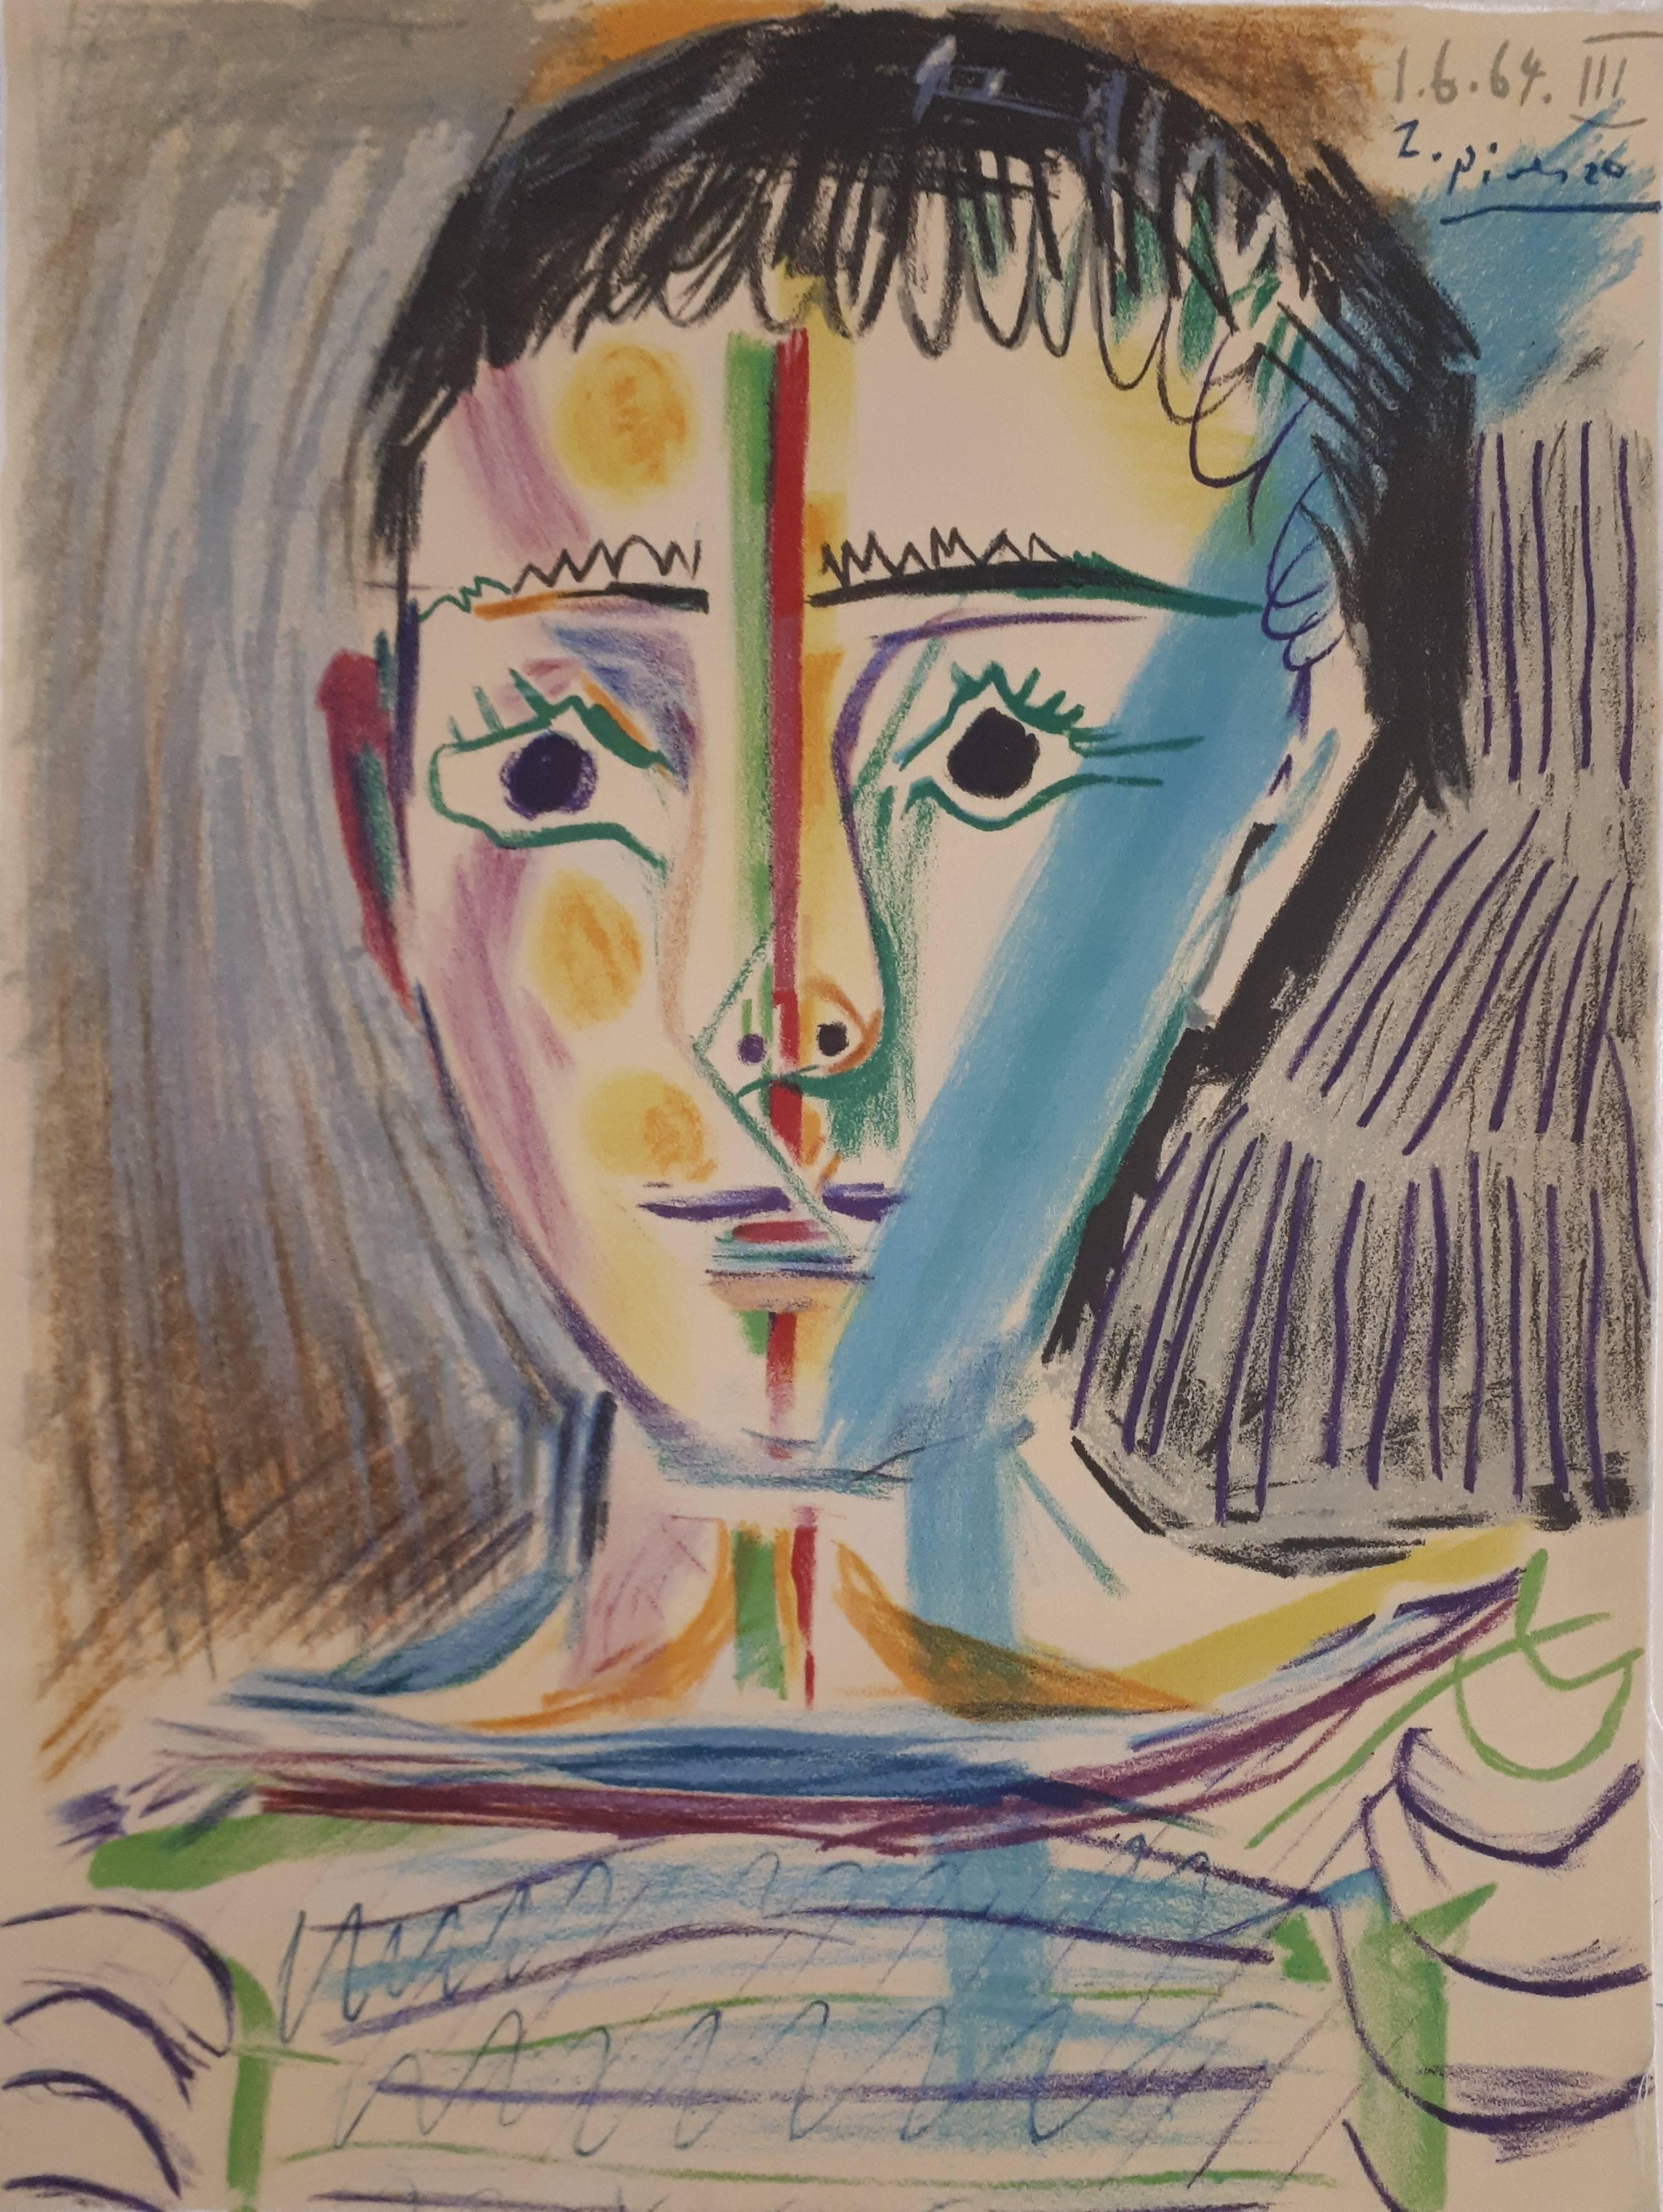 Man With Sailor Blouse - Stone lithograph - 1965